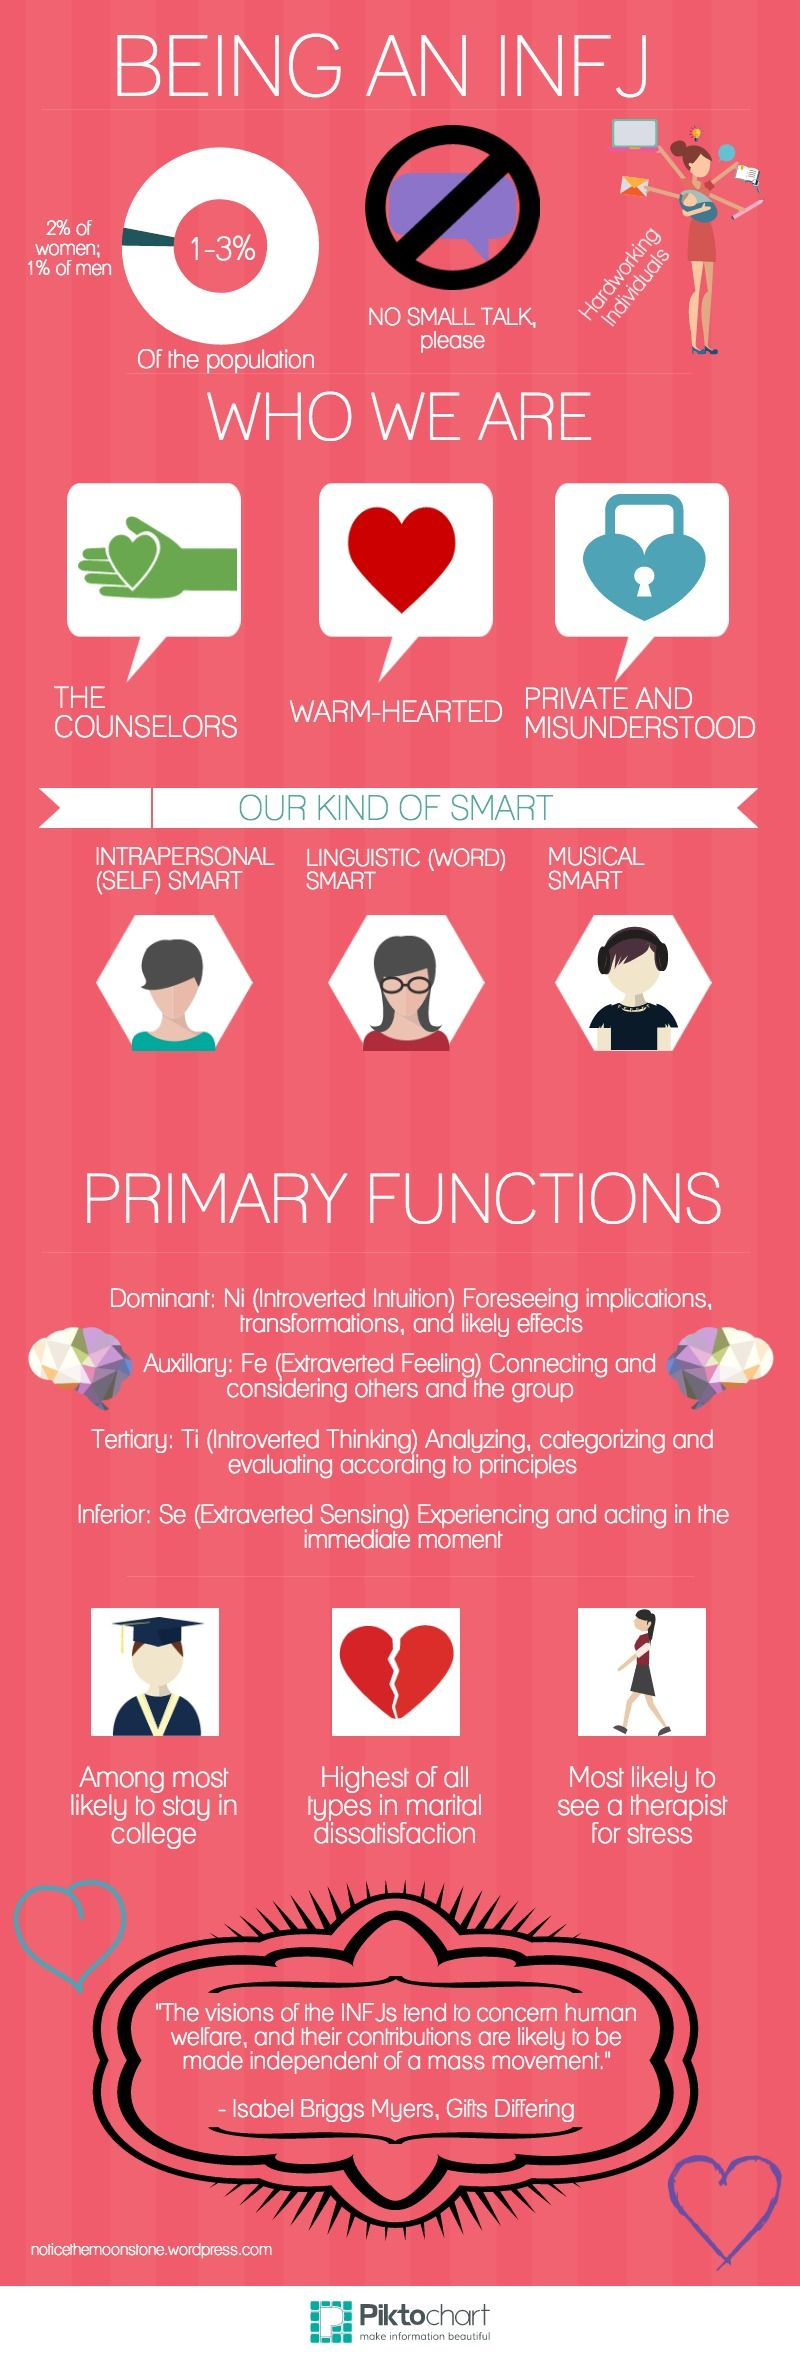 Being an INFJ – Mini Infographic